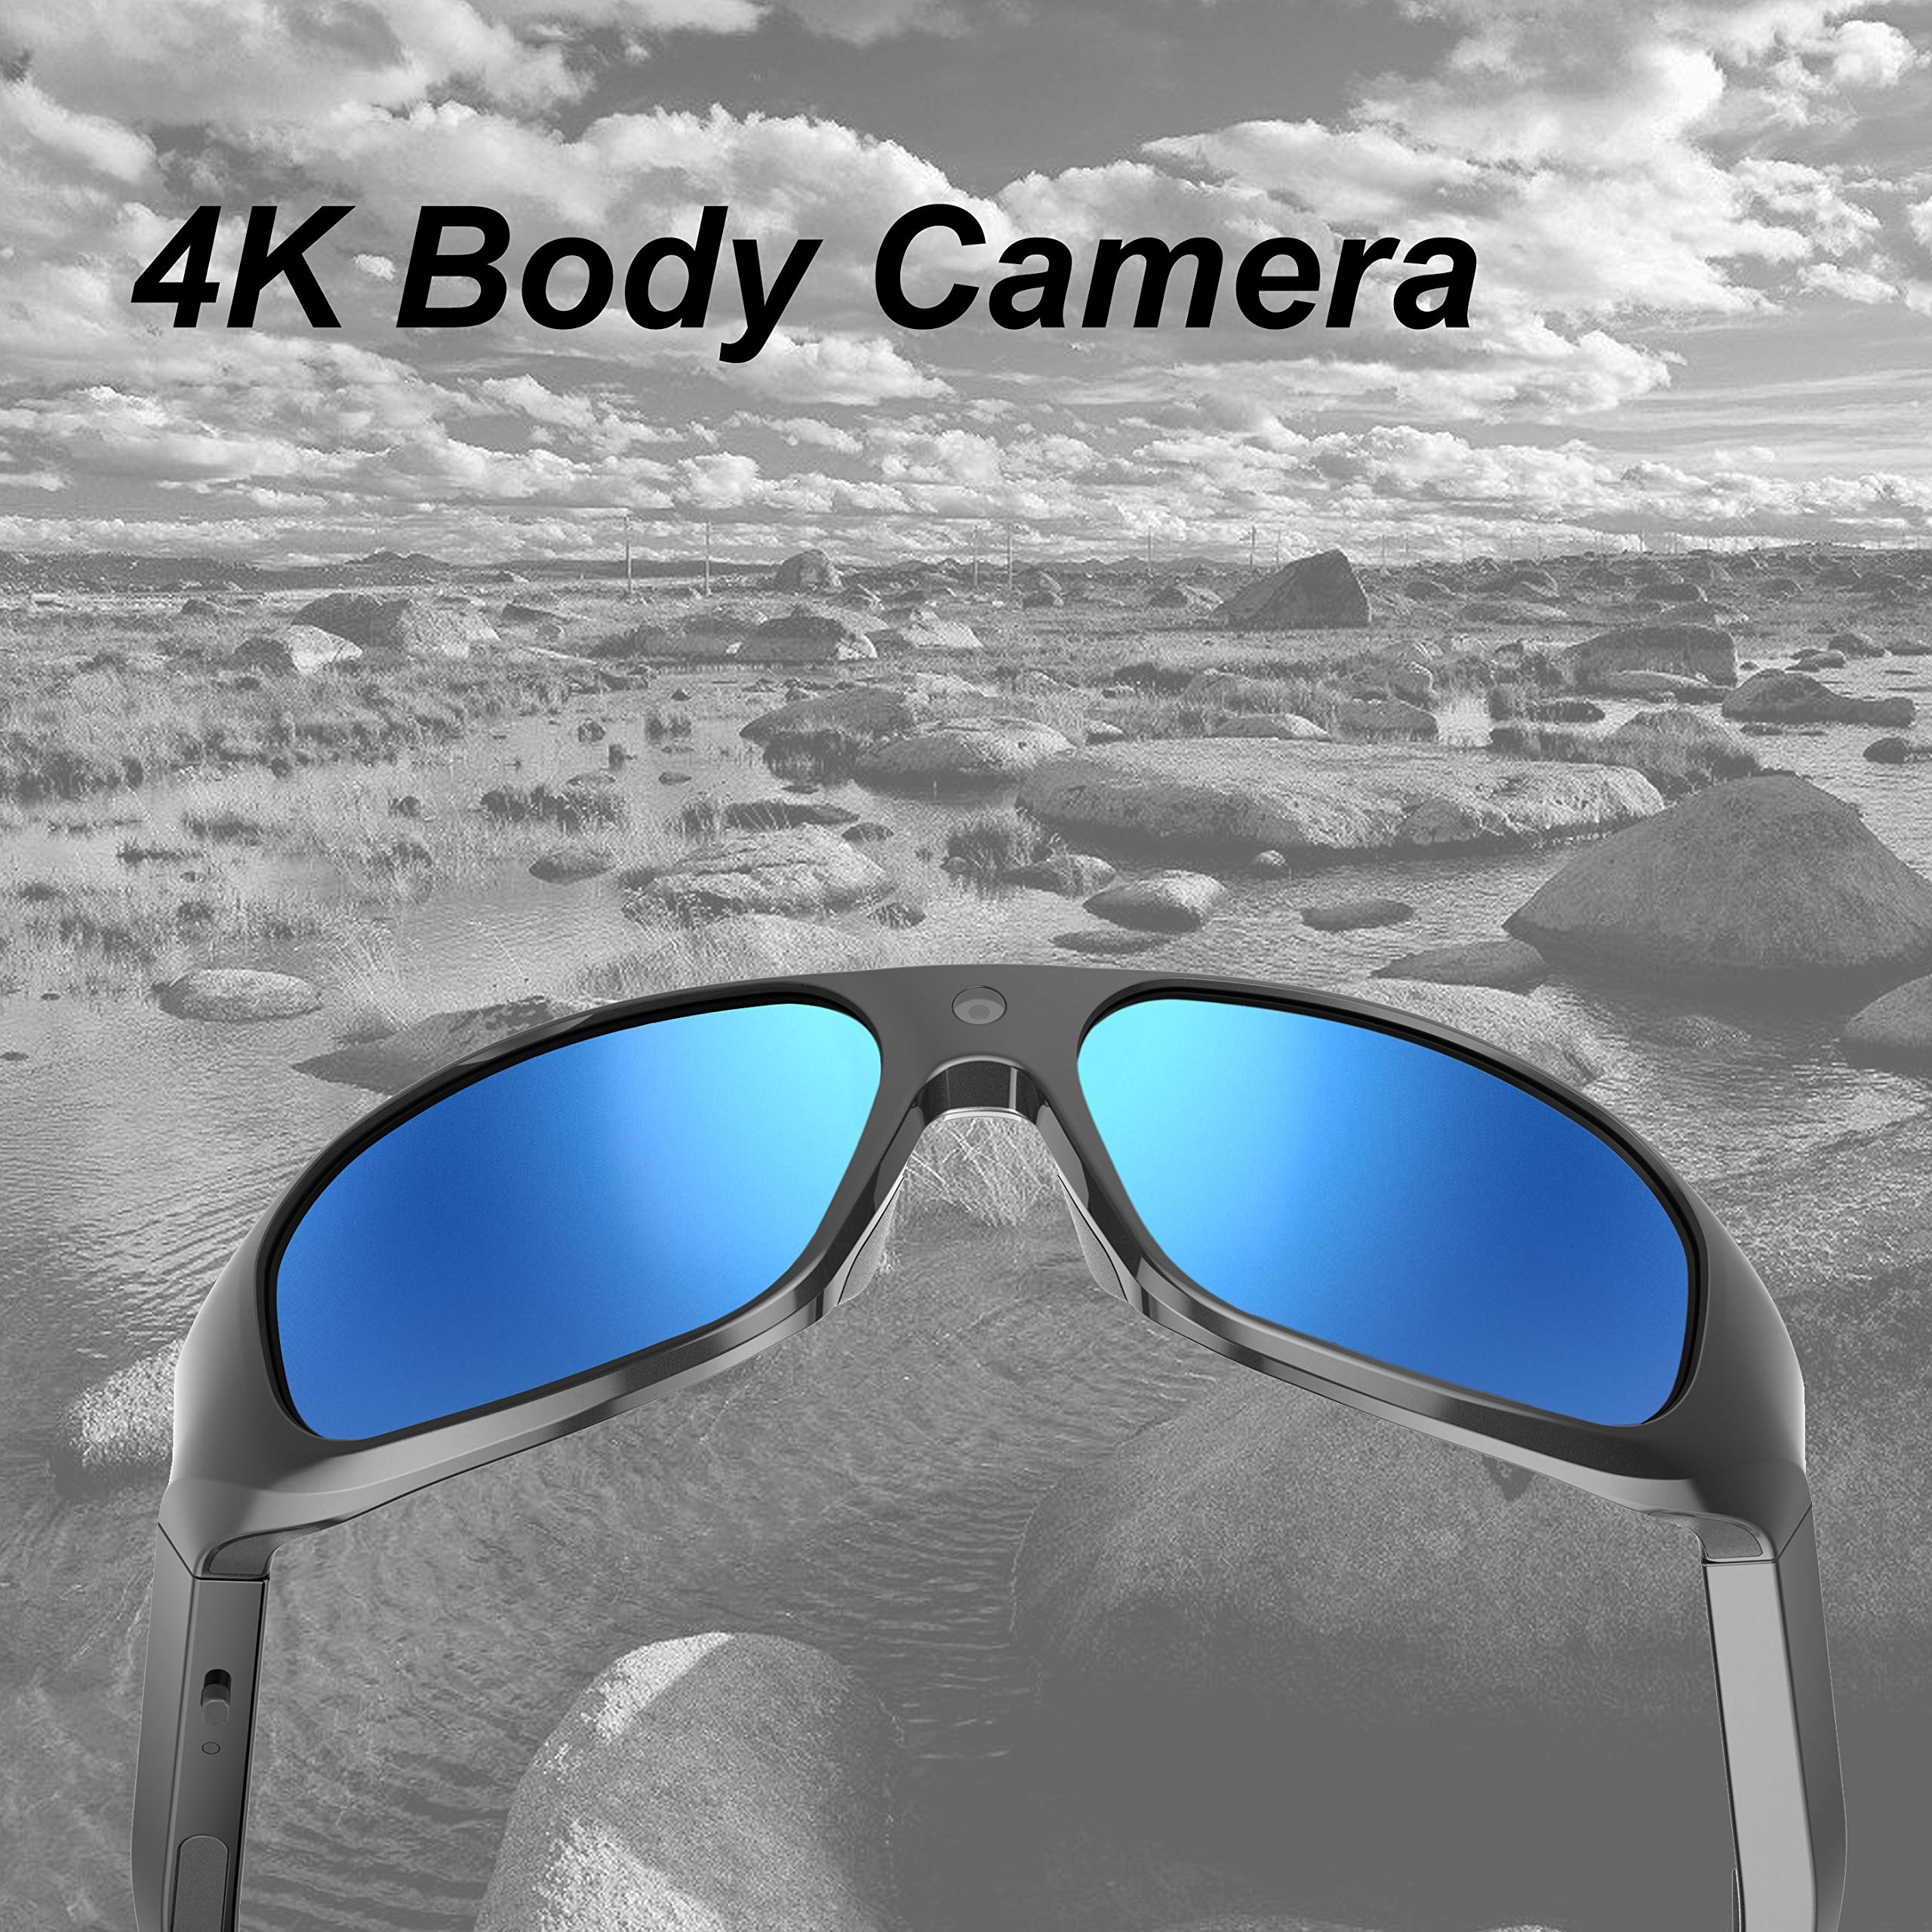 OHO 4K Ultra HD Waterproof Video Sunglasses, Sports Action Camera with Built-in 128GB Memory and Polarized UV400 Protection Safety Lenses,Unisex Sport Design by OhO sunshine